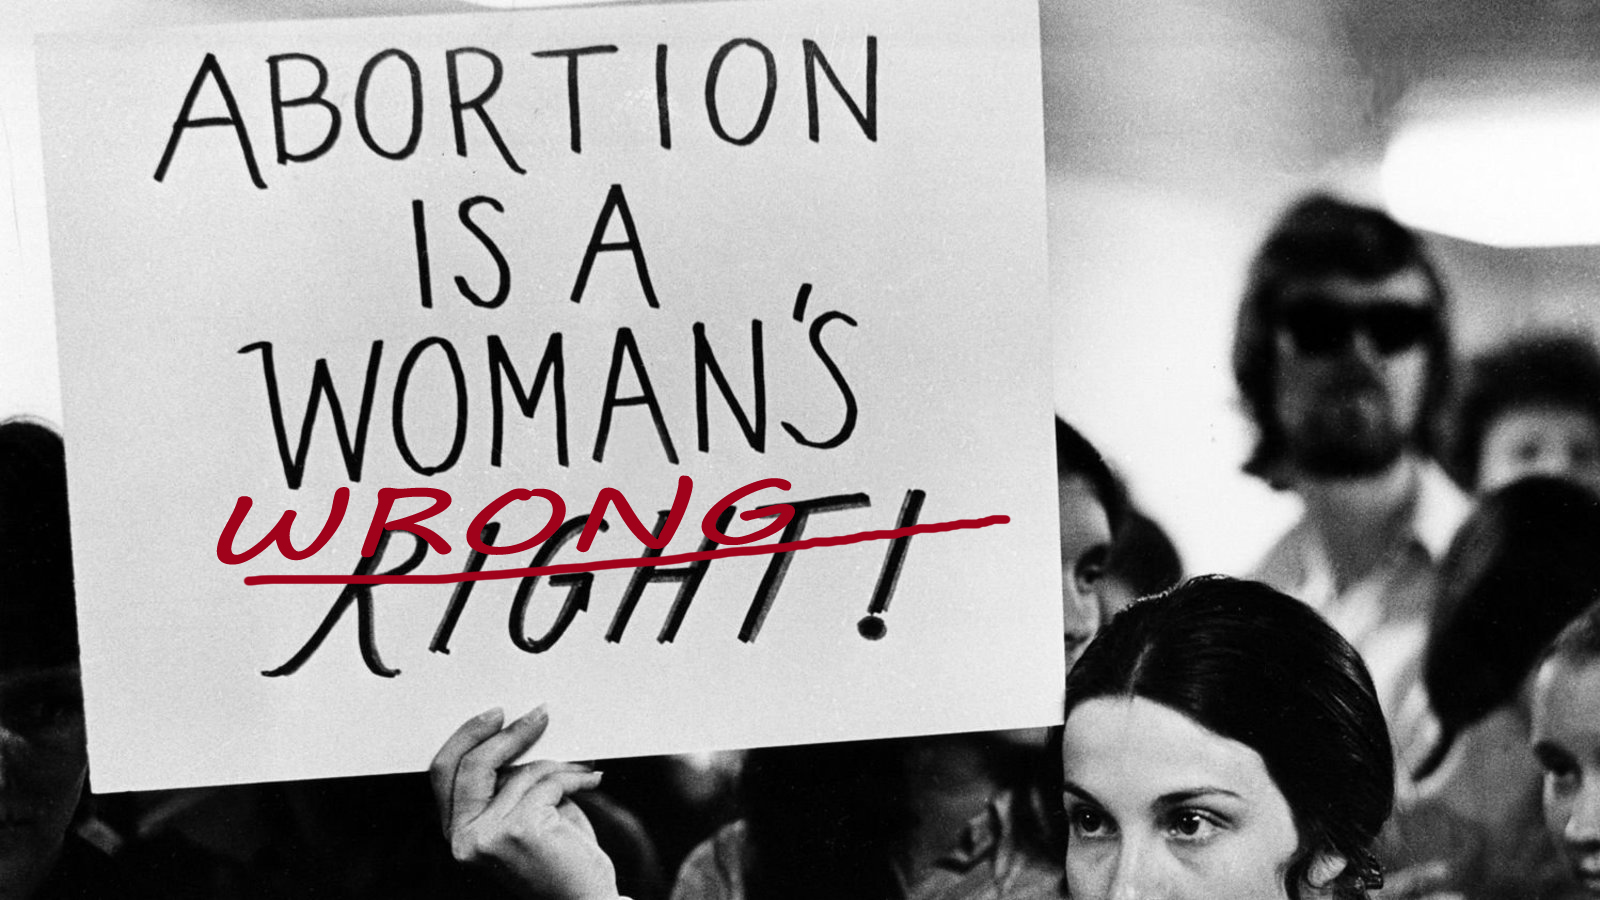 Abortion is a woman's wrong